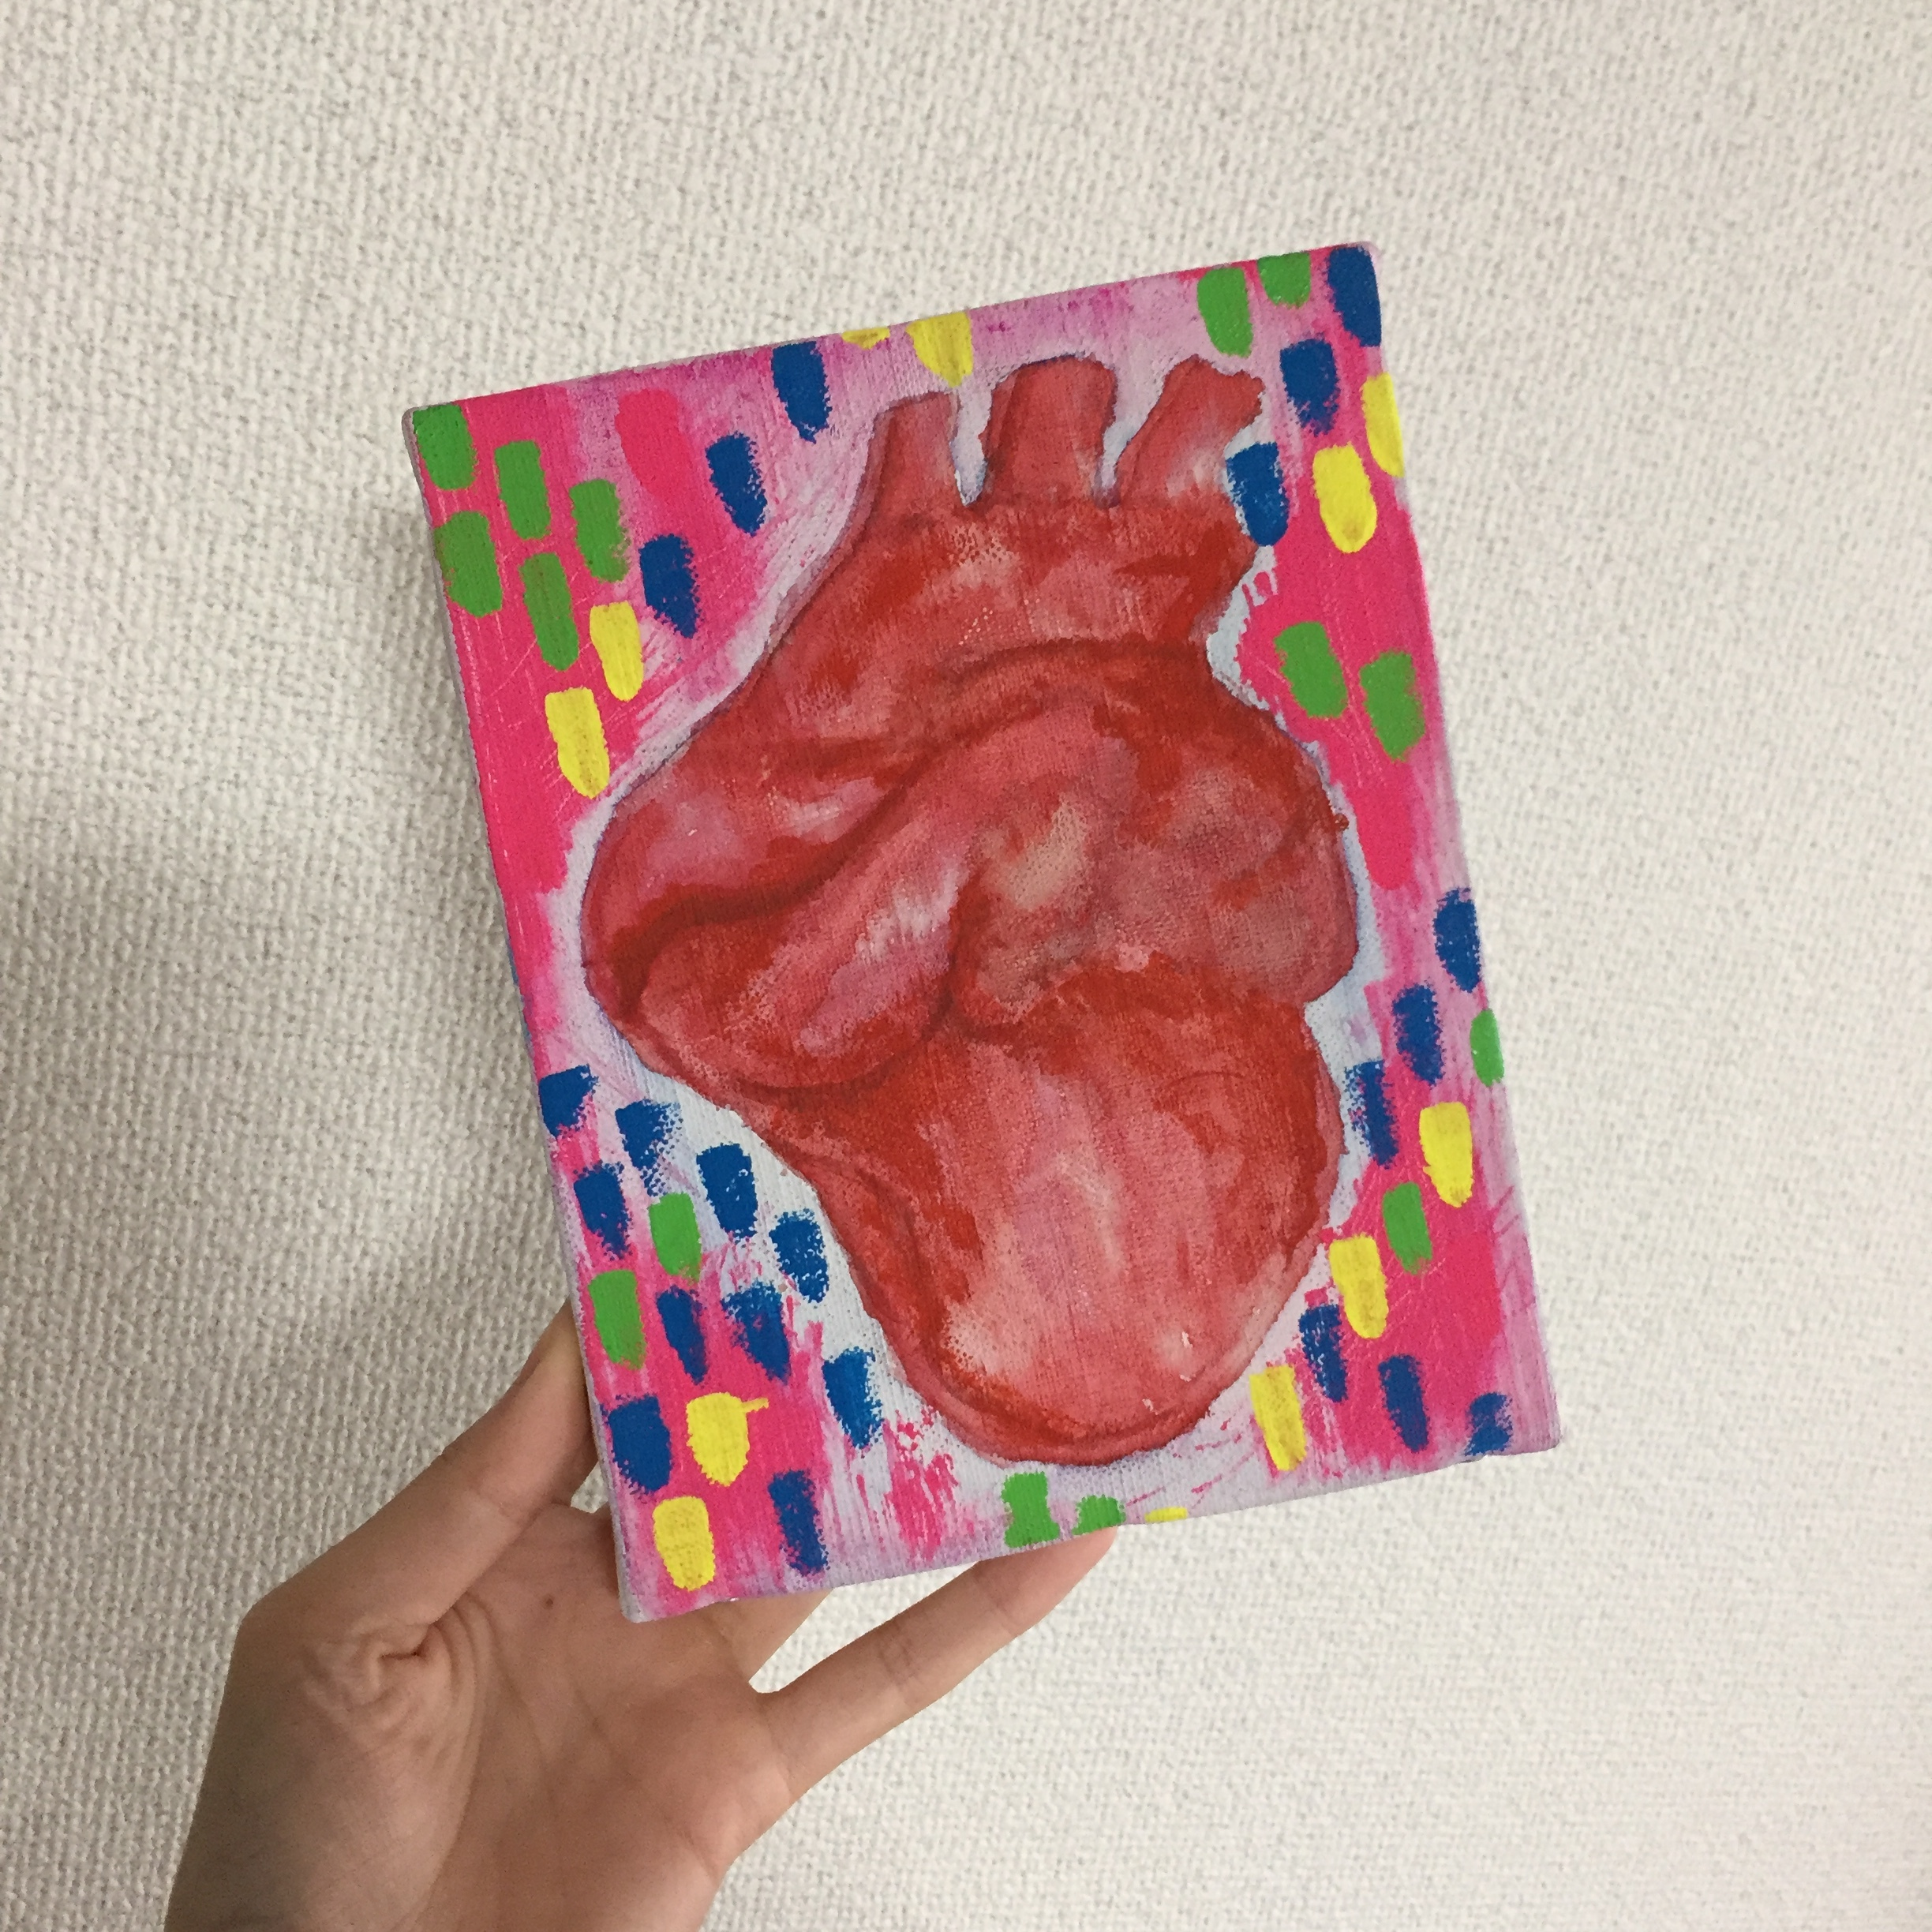 Heart in Love/18cm×14cm/Acrylic painting/ Original Drawing